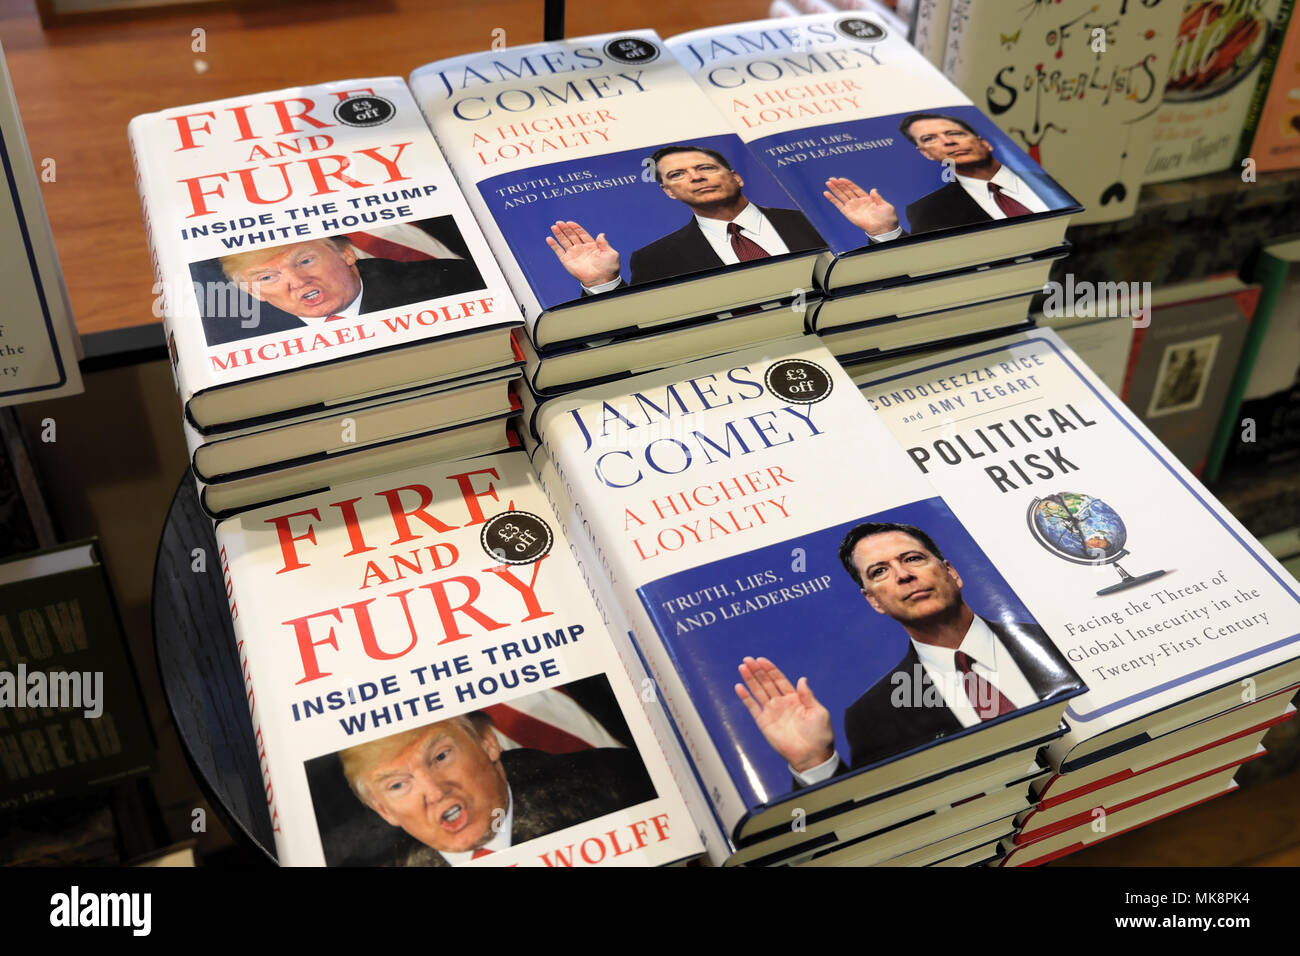 'Fire and Fury' Michael Wolfe book and 'A Higher Loyalty' James Comey books focussing on Donald Trump behaviour for sale in bookstore UK  KATHY DEWITT - Stock Image